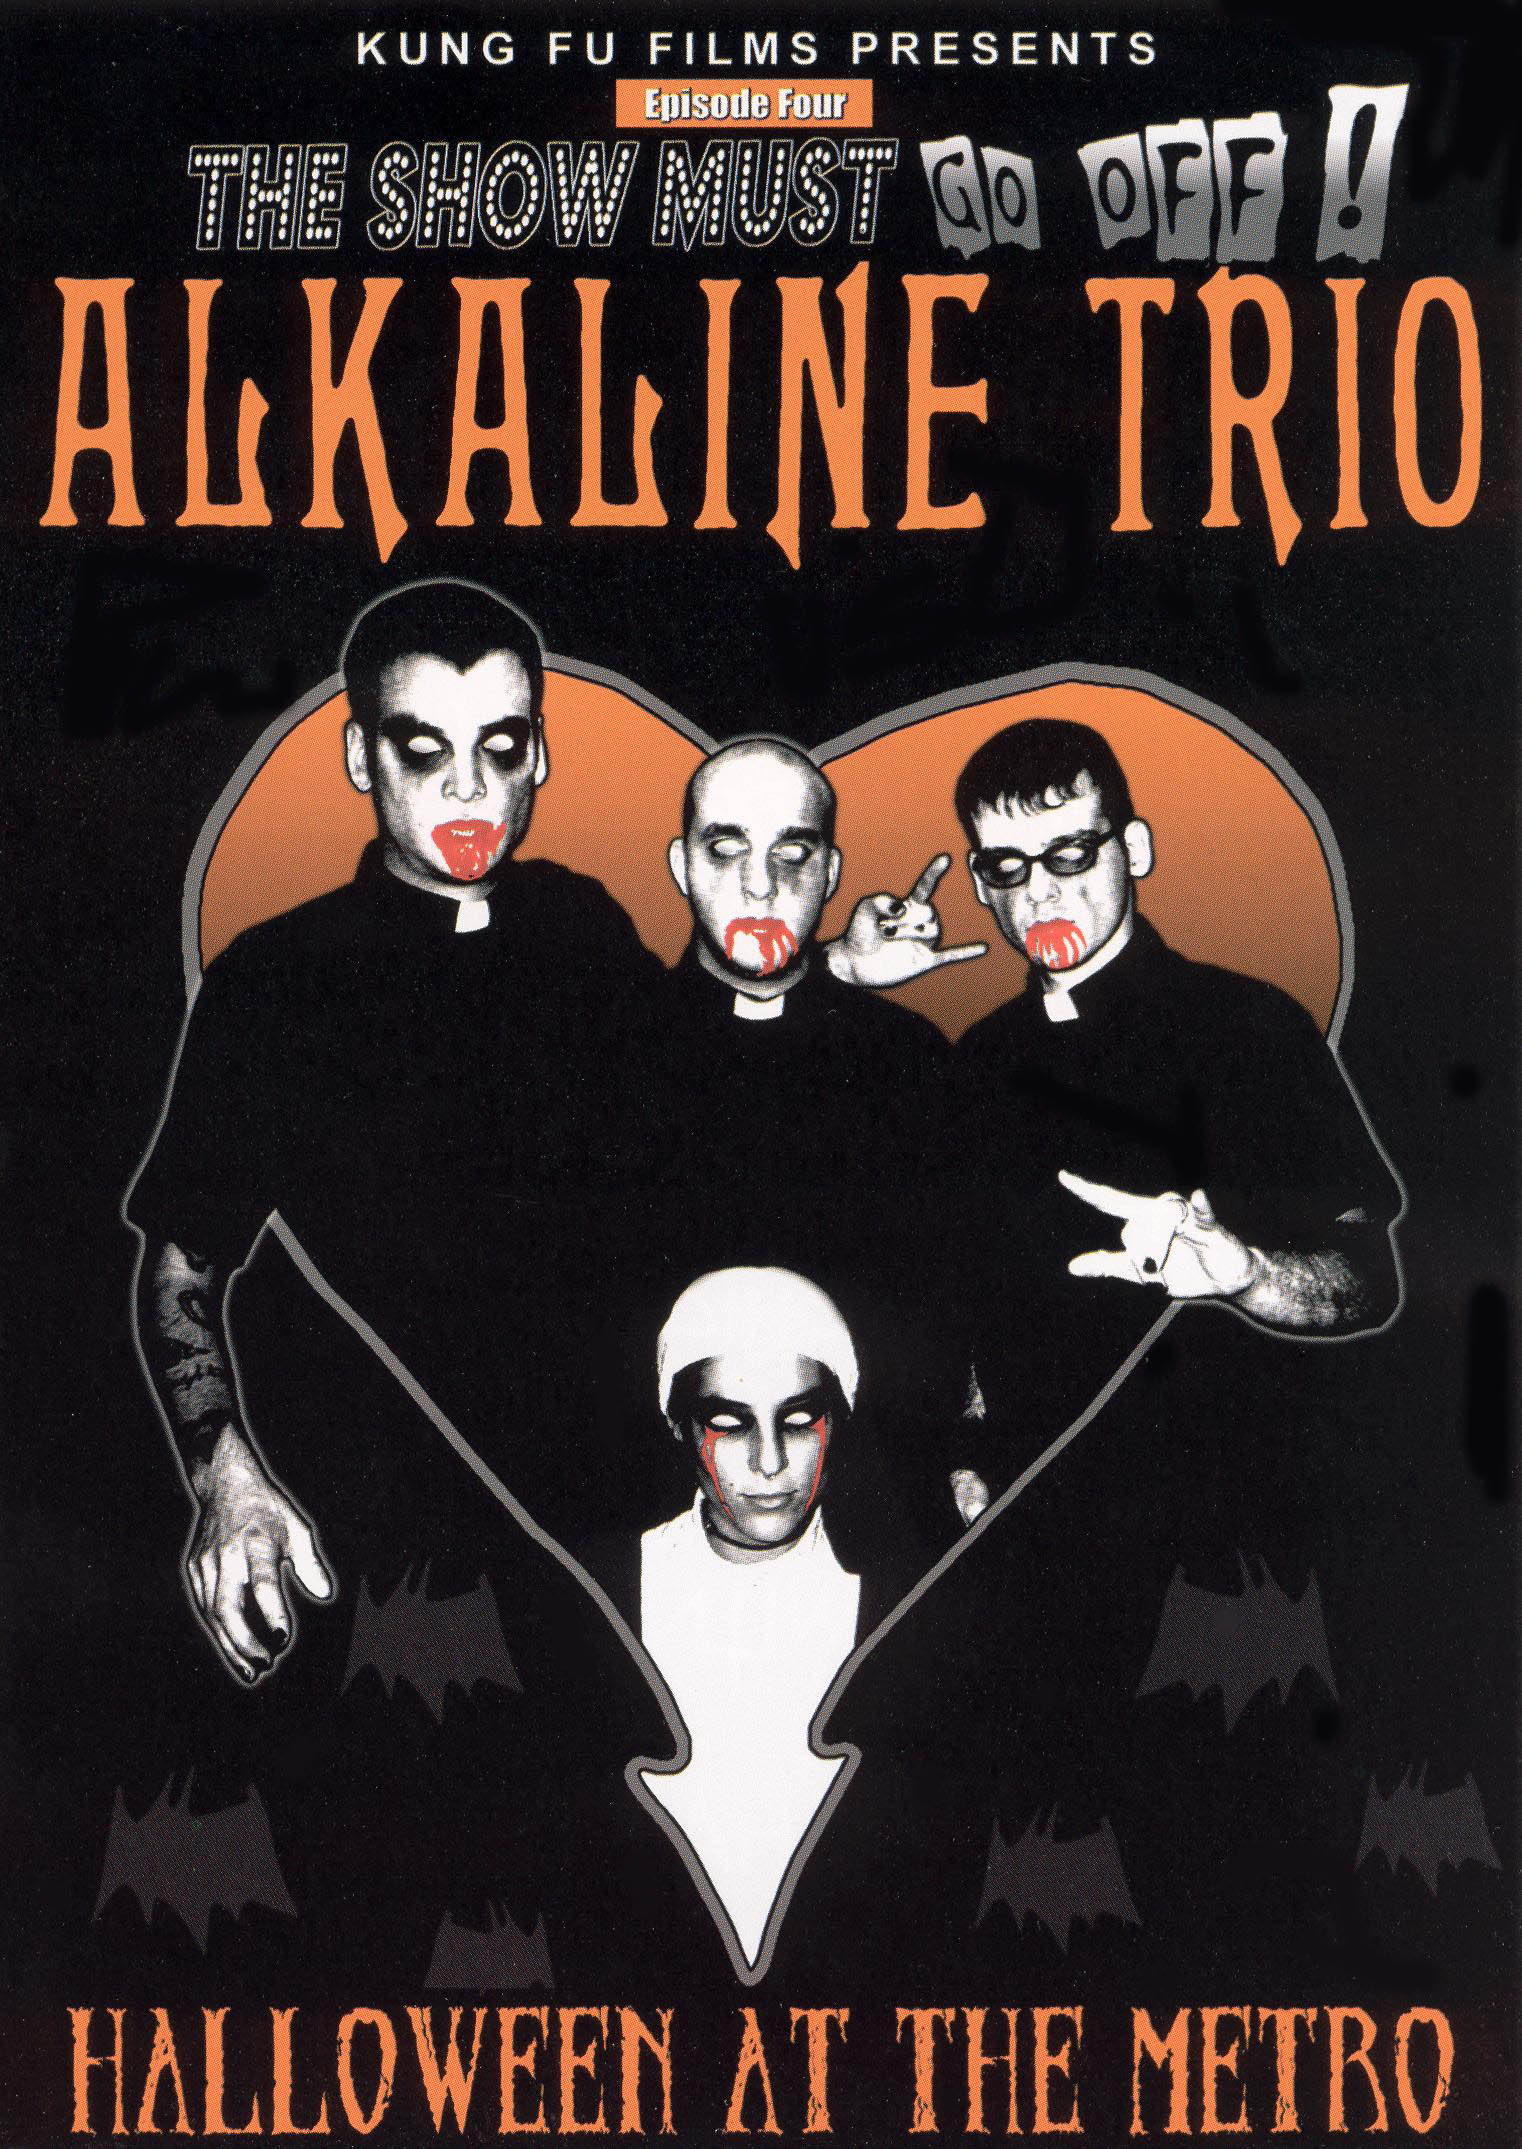 The Show Must Go Off! Alkaline Trio - Halloween at the Metro